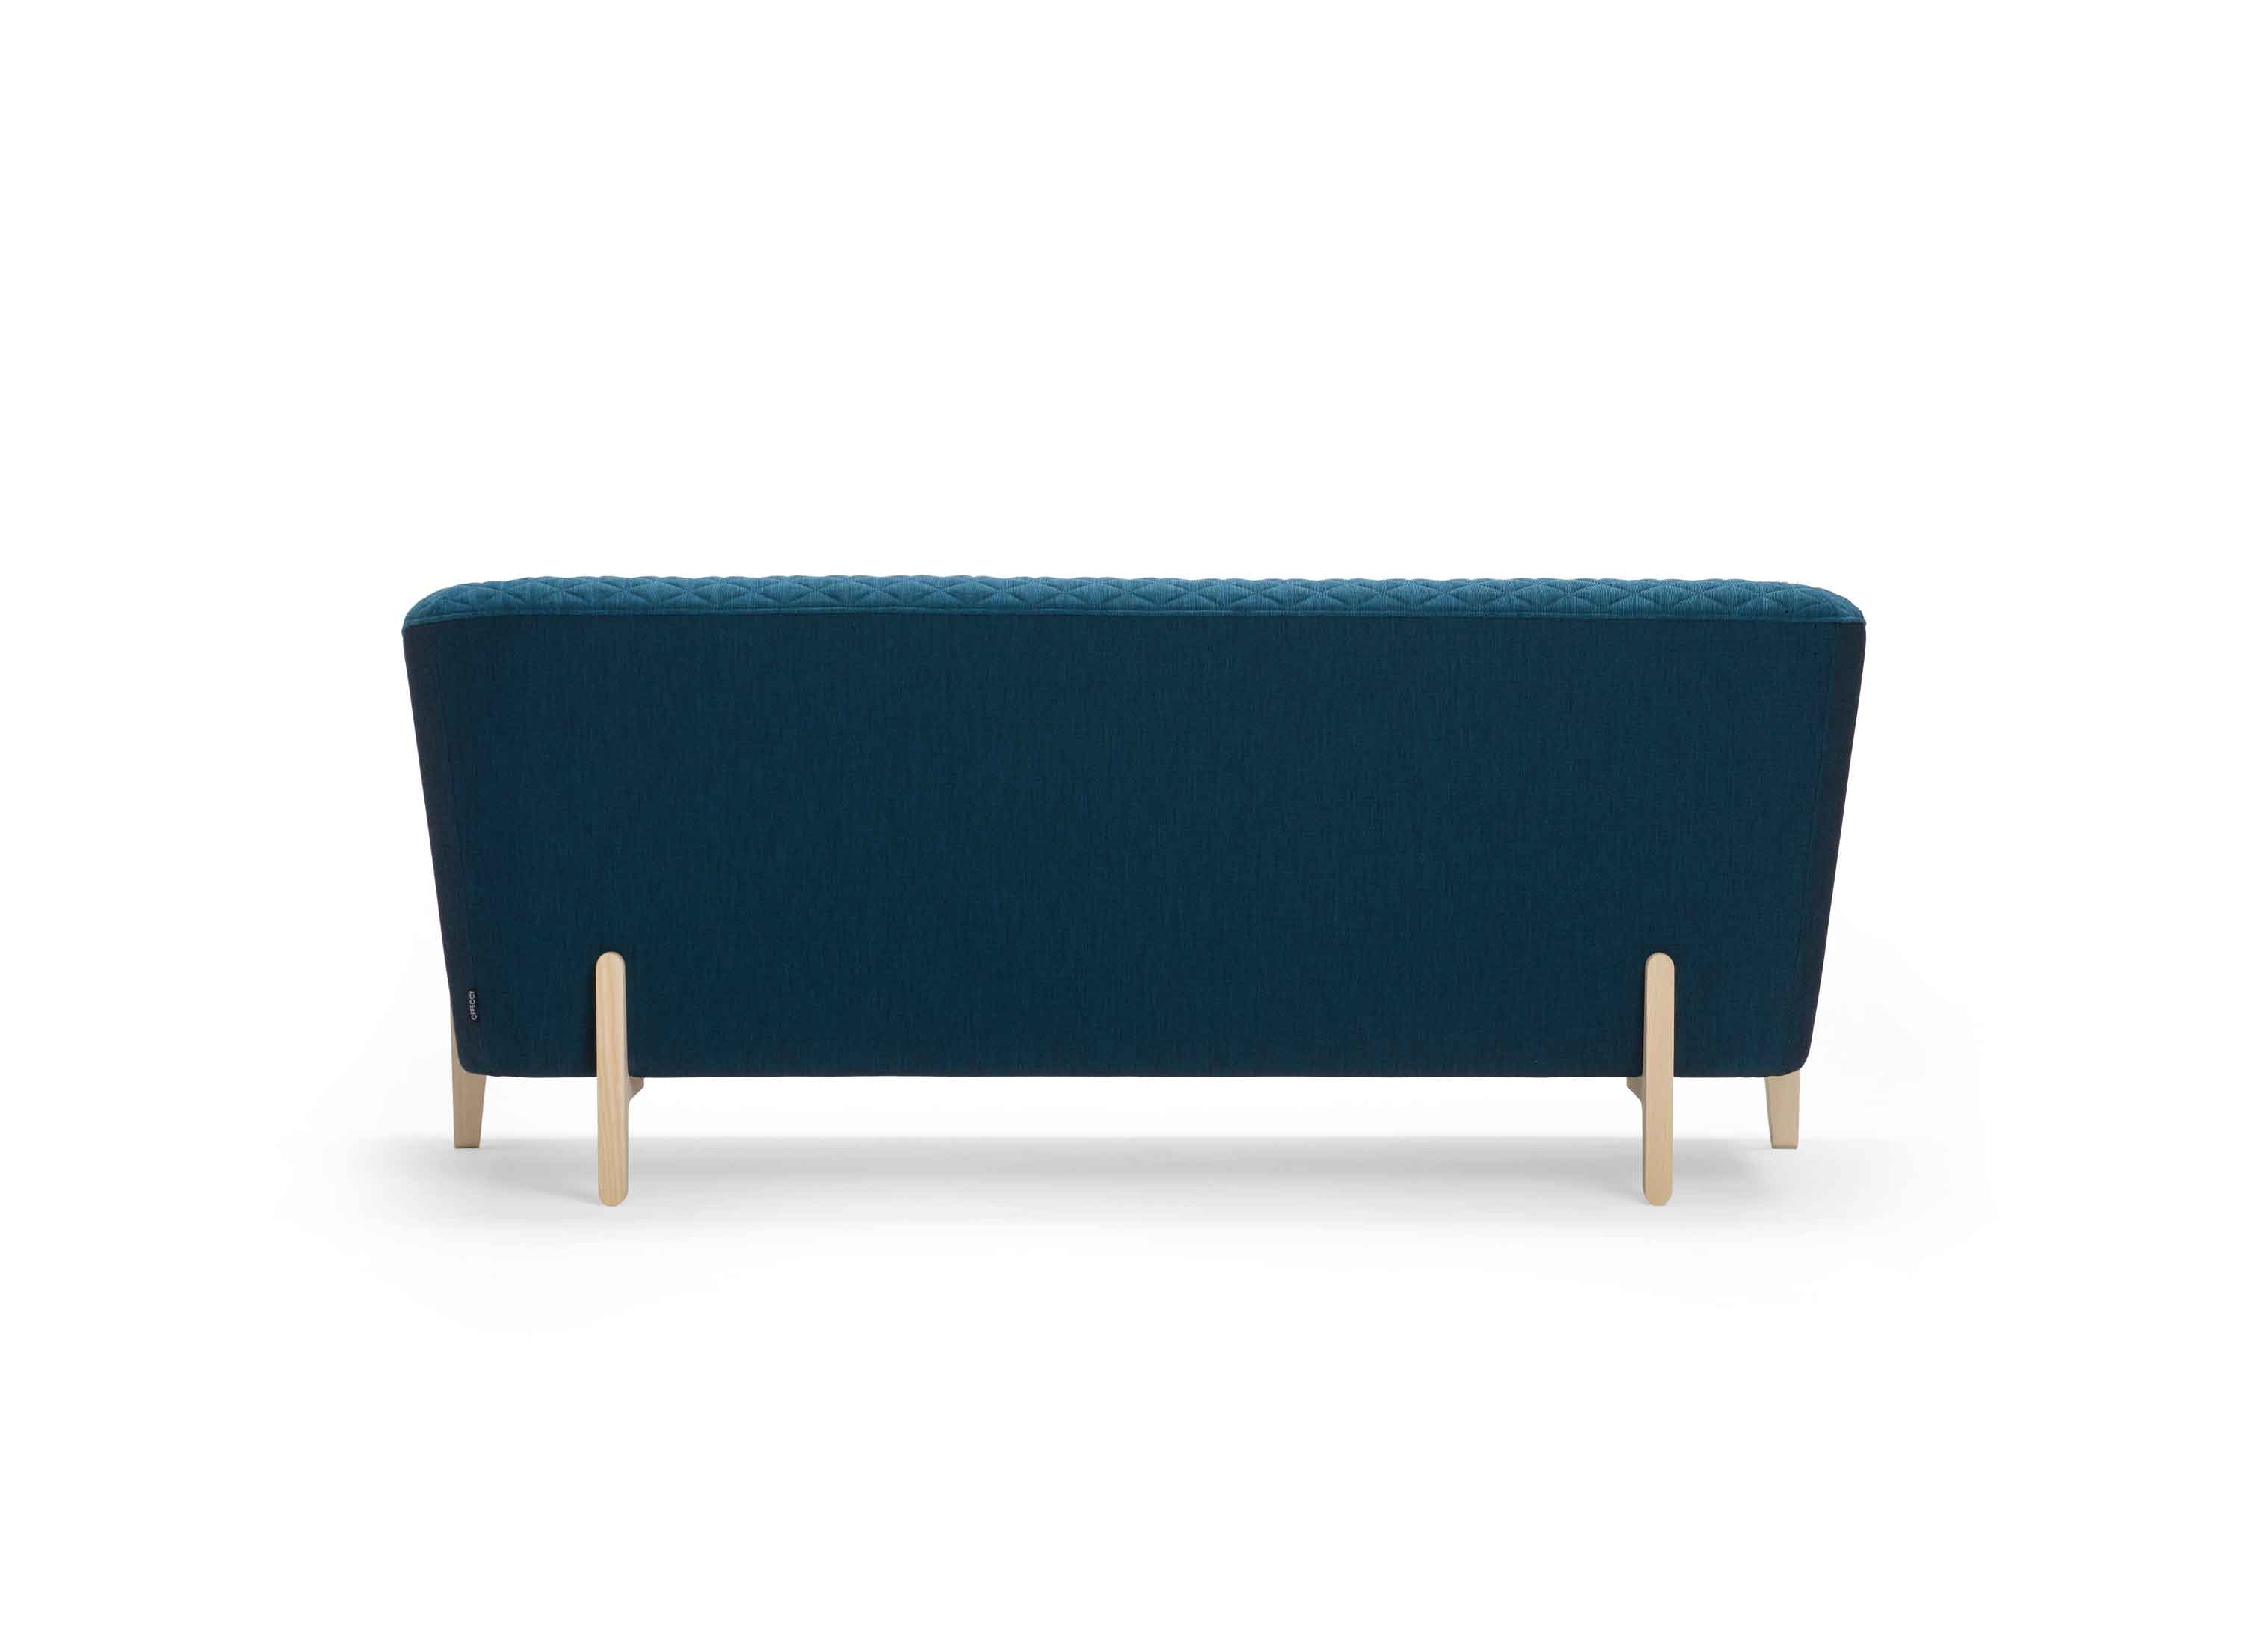 Young-Sofas-Michael-Young-offecct-12